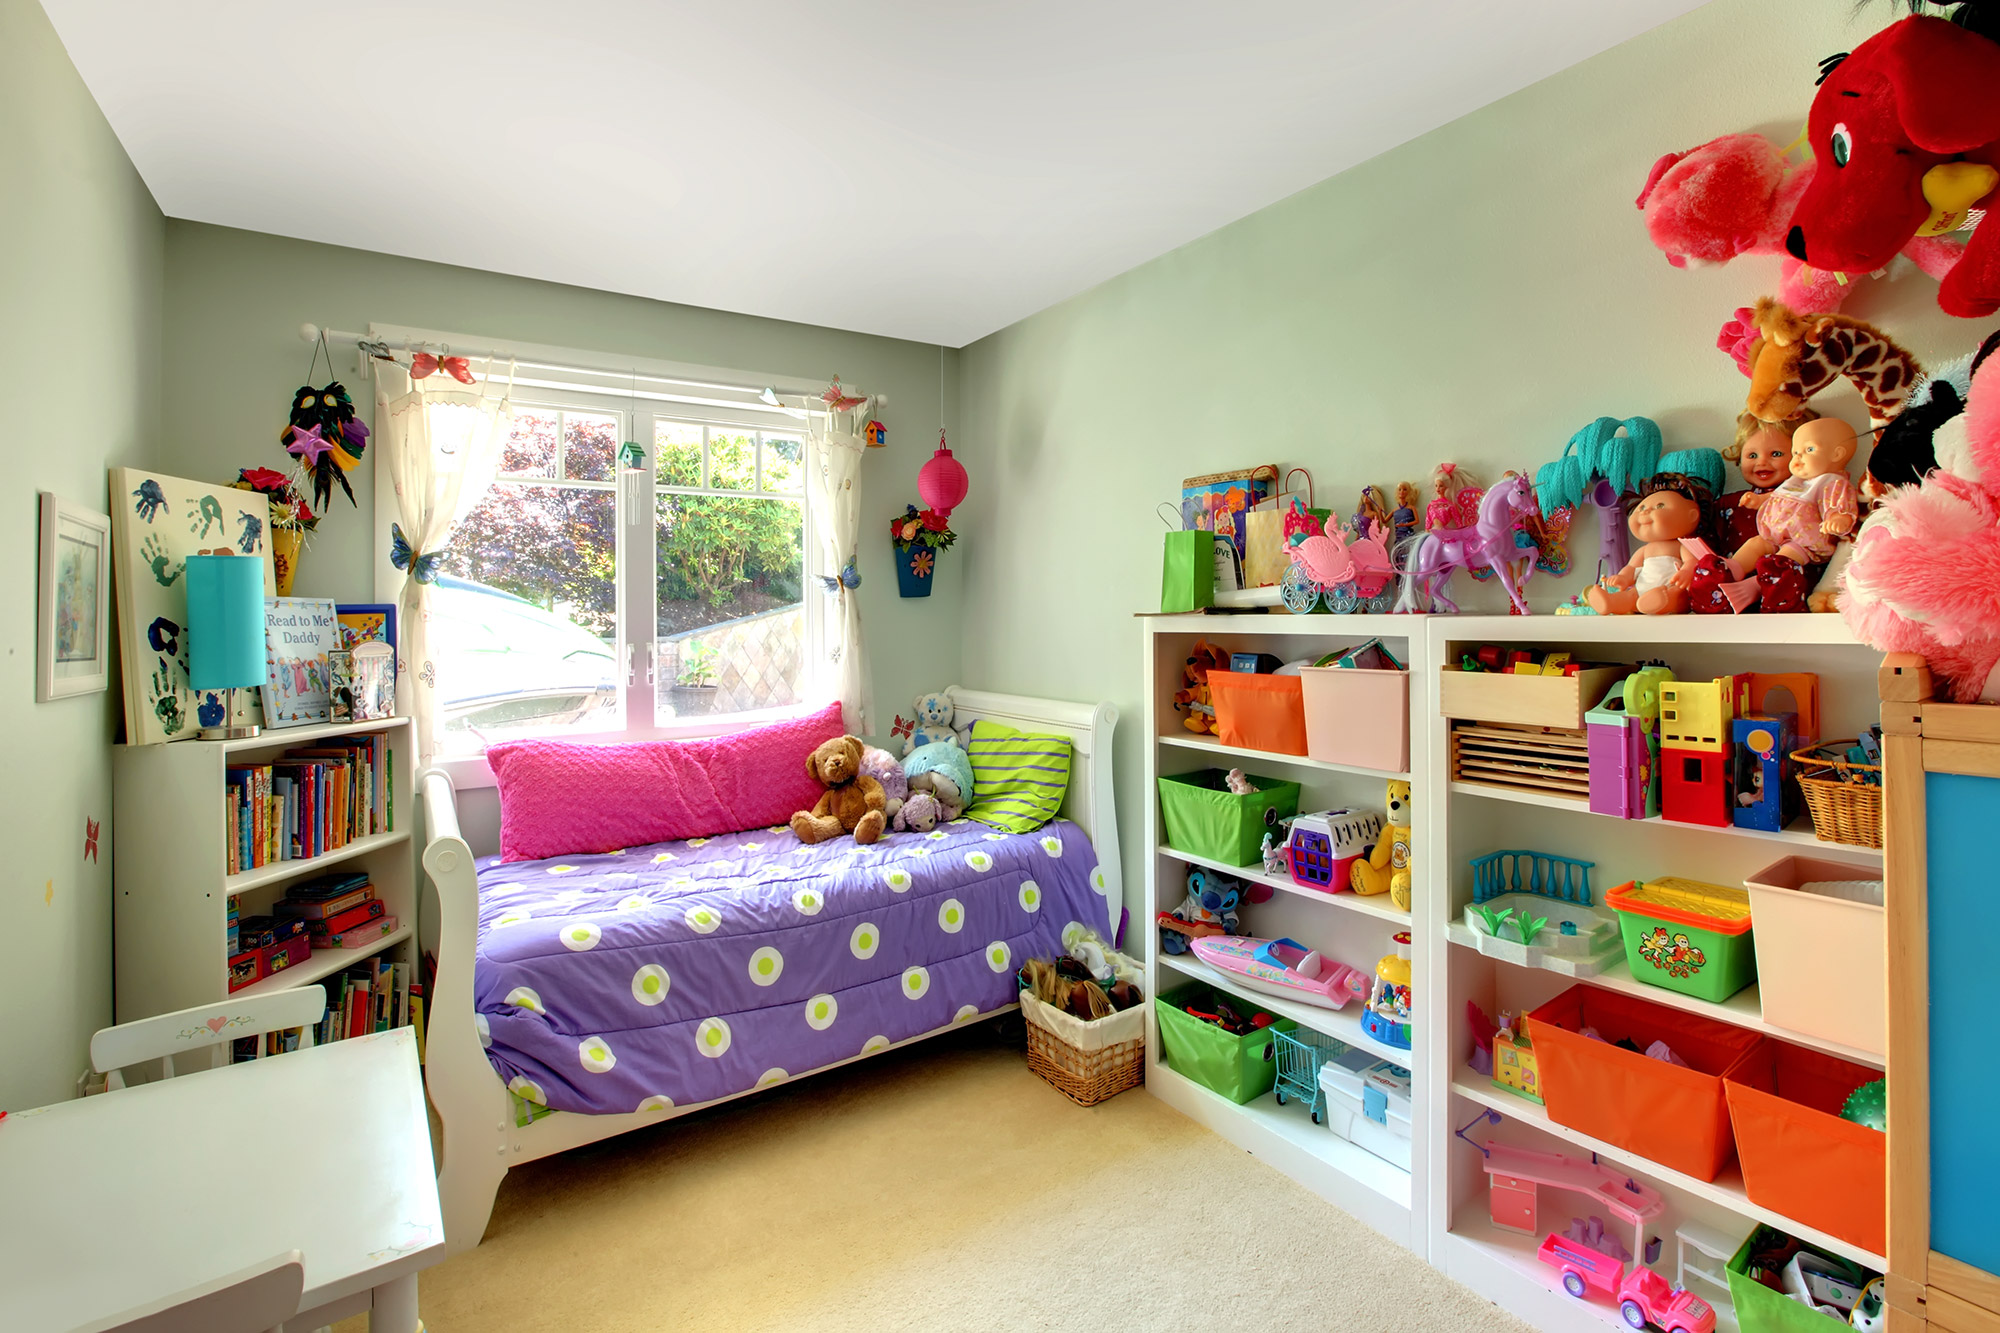 Rose Organizing Bedroom